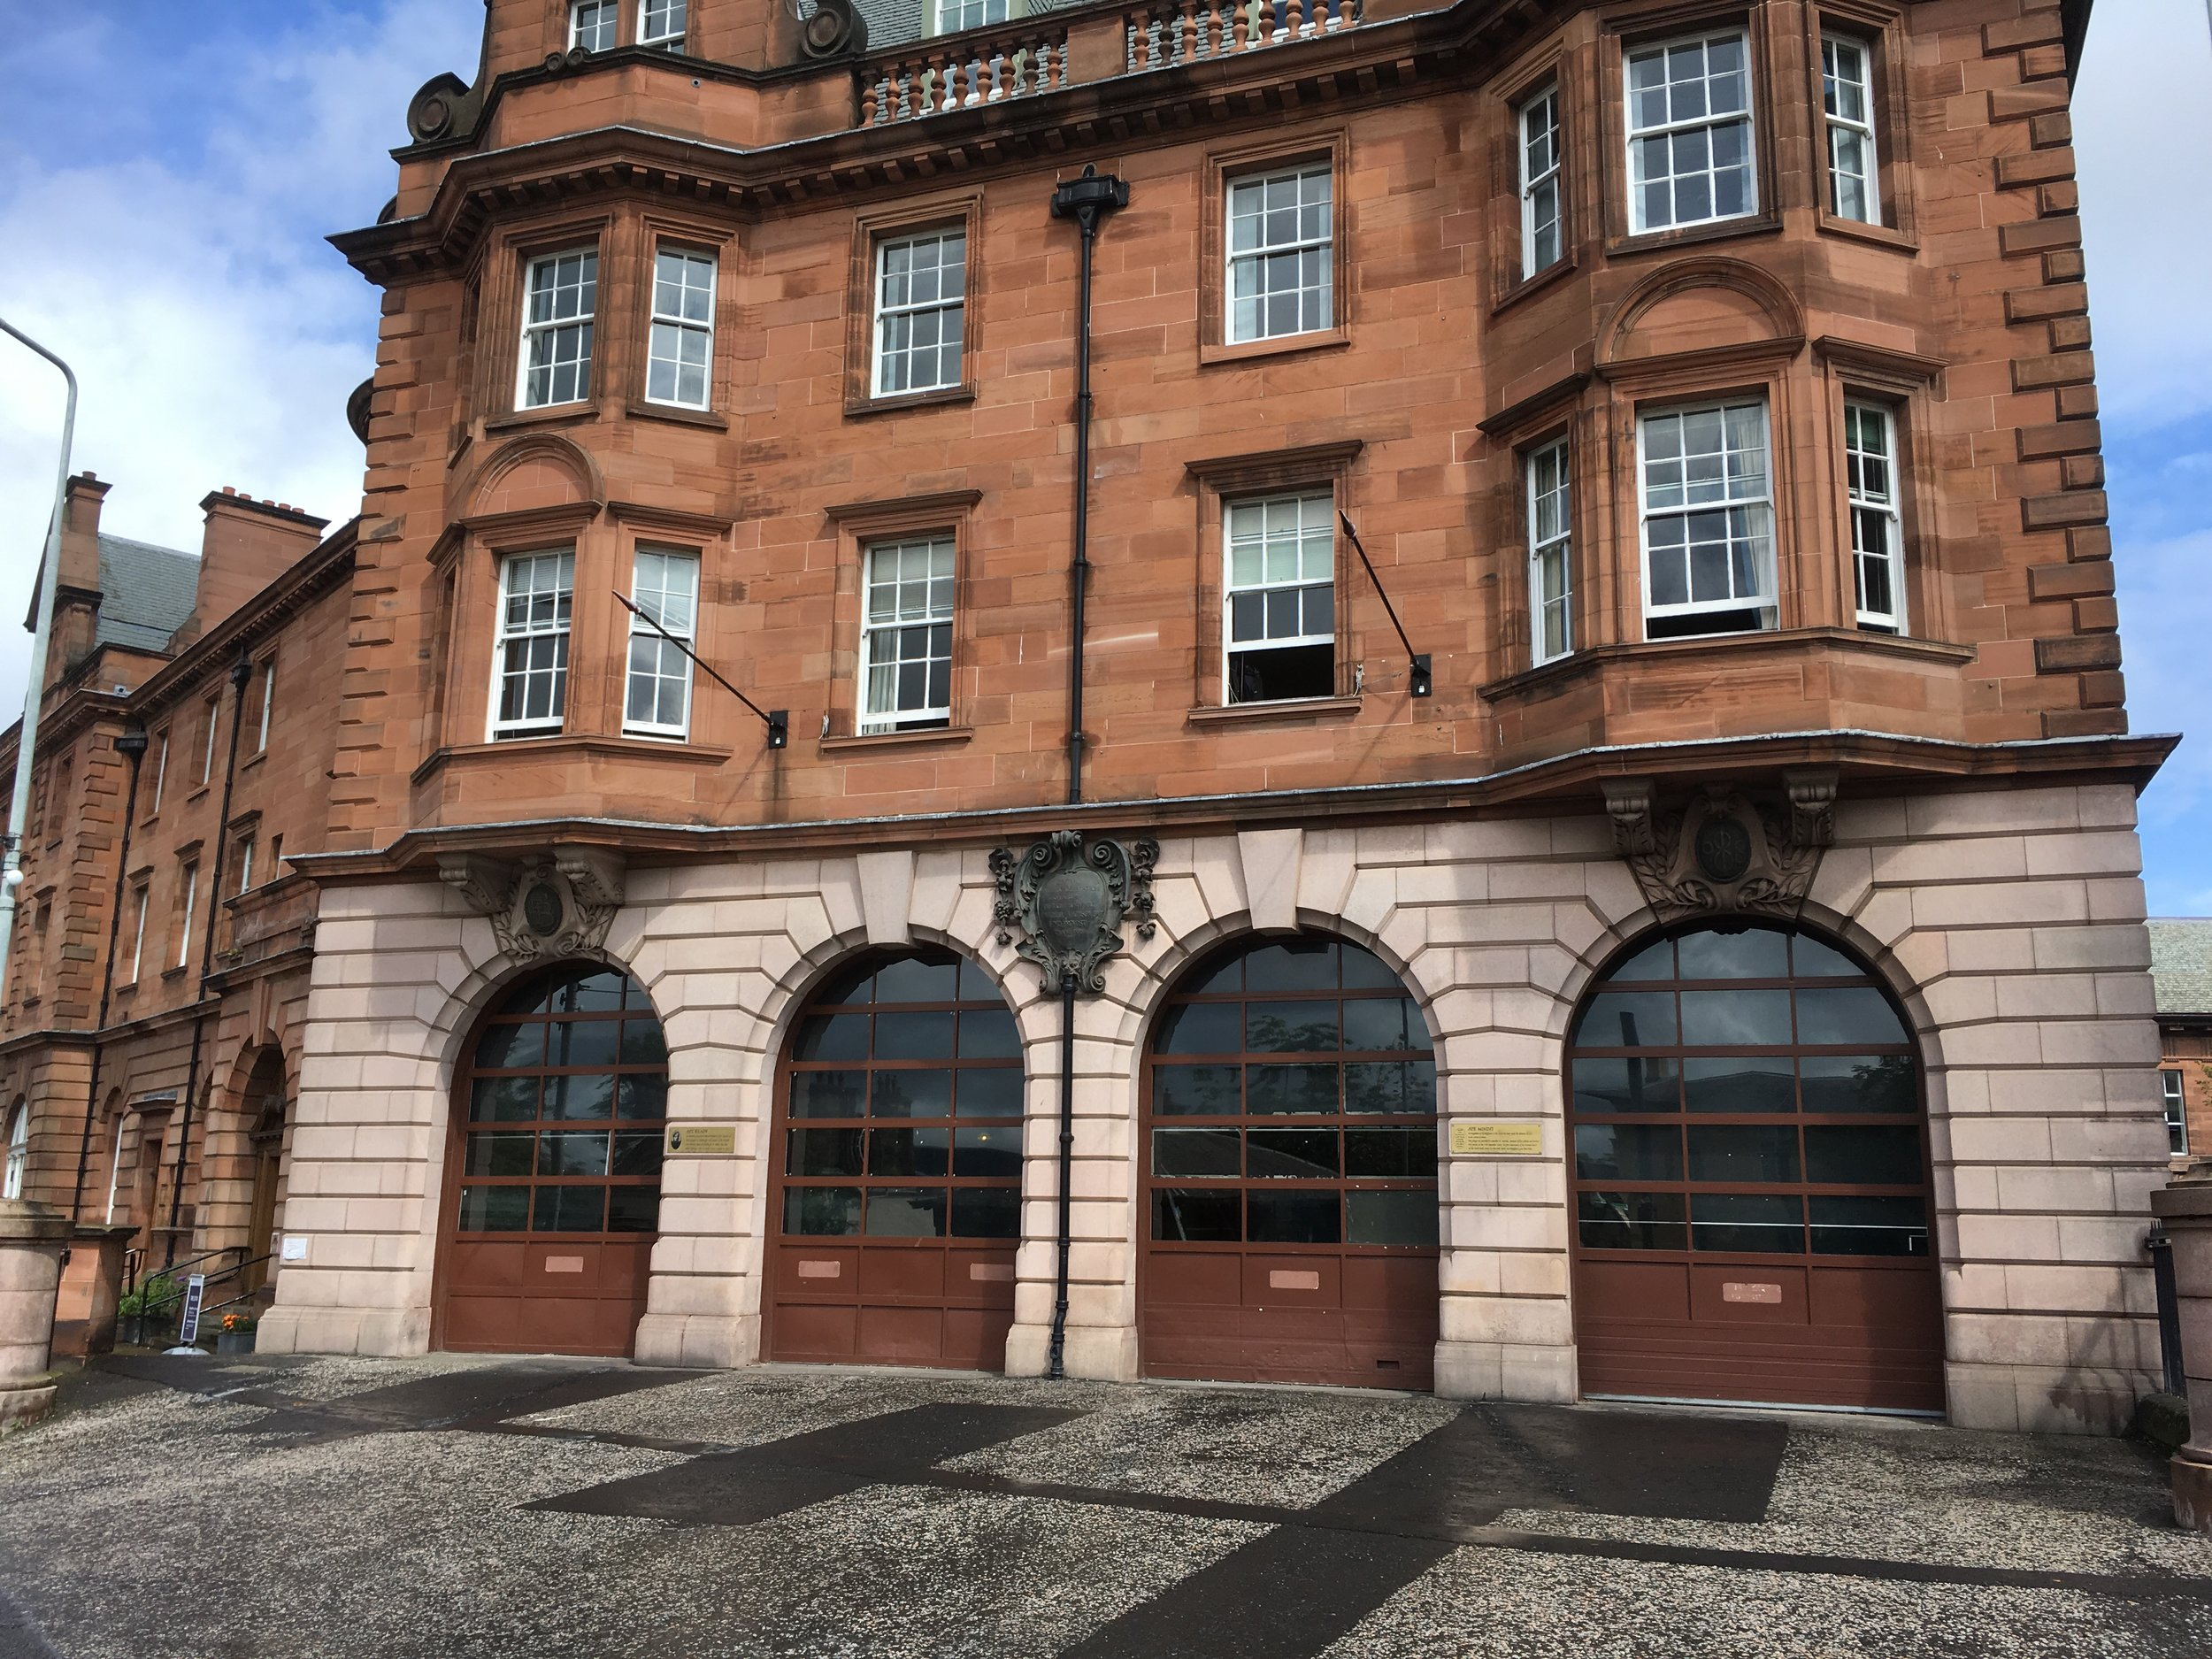 The Fire Station - The Fire Station at Edinburgh College of Art is booked and it just needs your work to fill it!